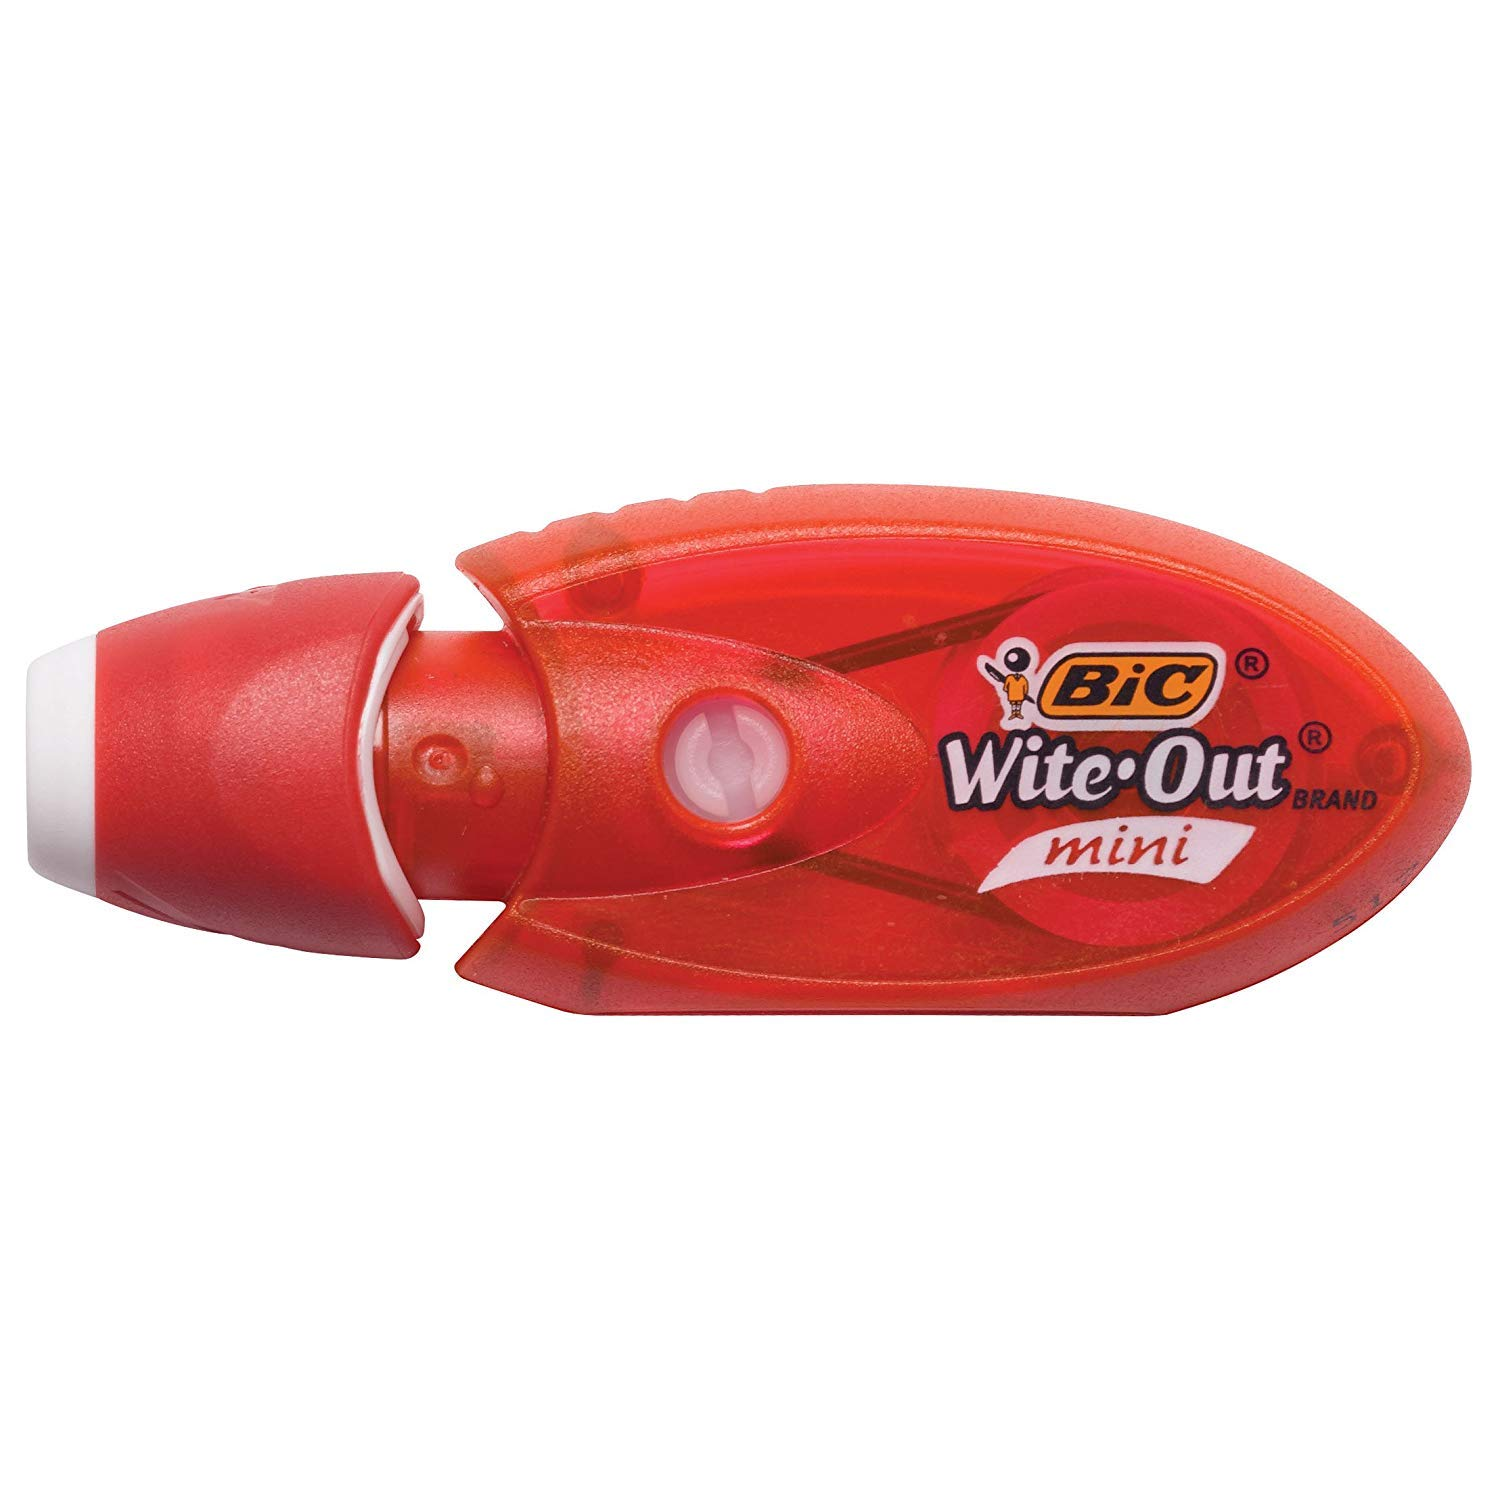 2-Count WOMTP21 5 Pack BIC Wite-Out Brand Mini Twist Correction Tape White